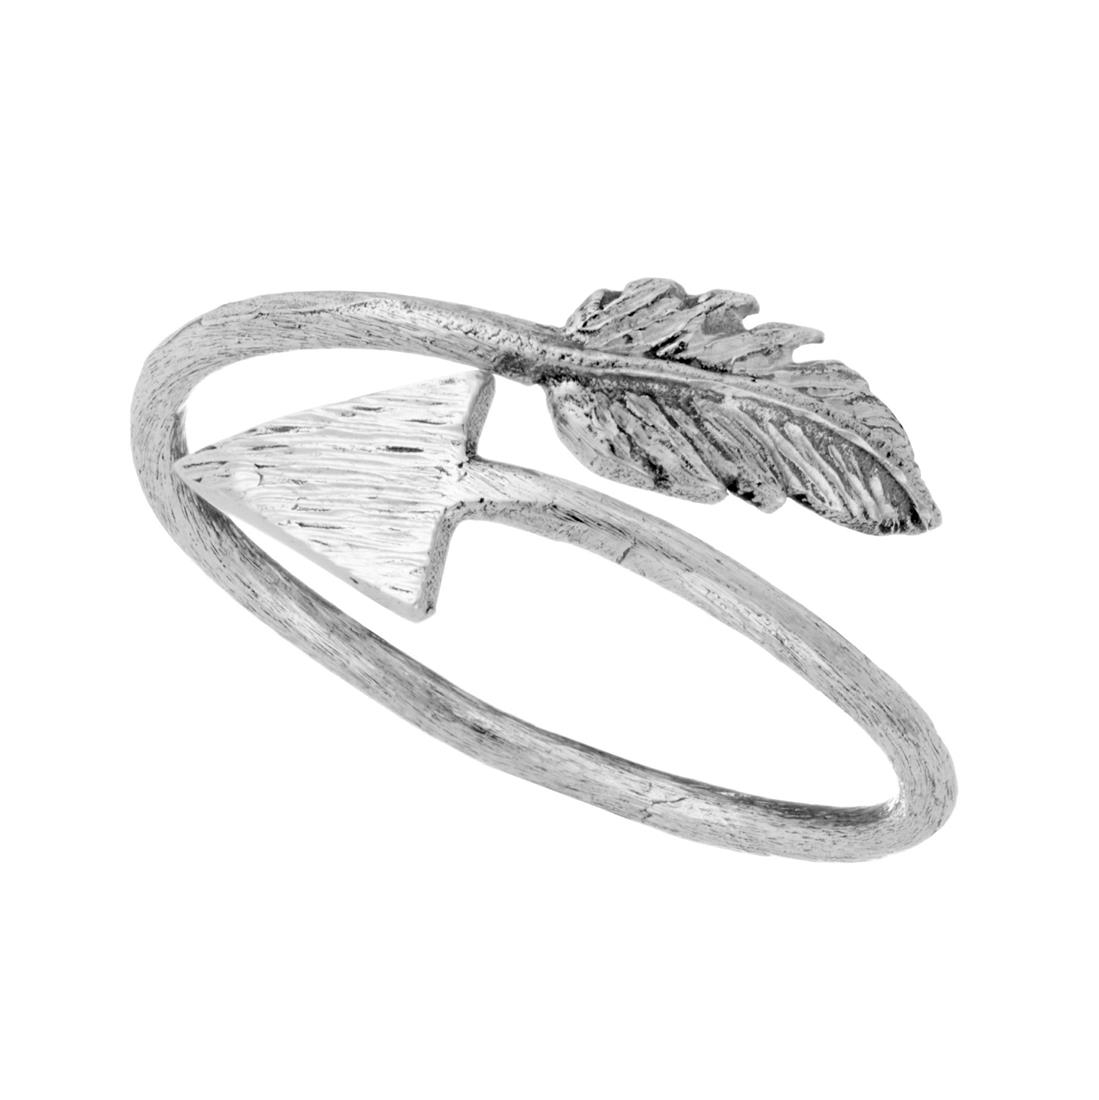 Satin Silver Arrow Wraparound Adjustable Ring For Most Current Wrap Around Arrow Rings (View 18 of 25)